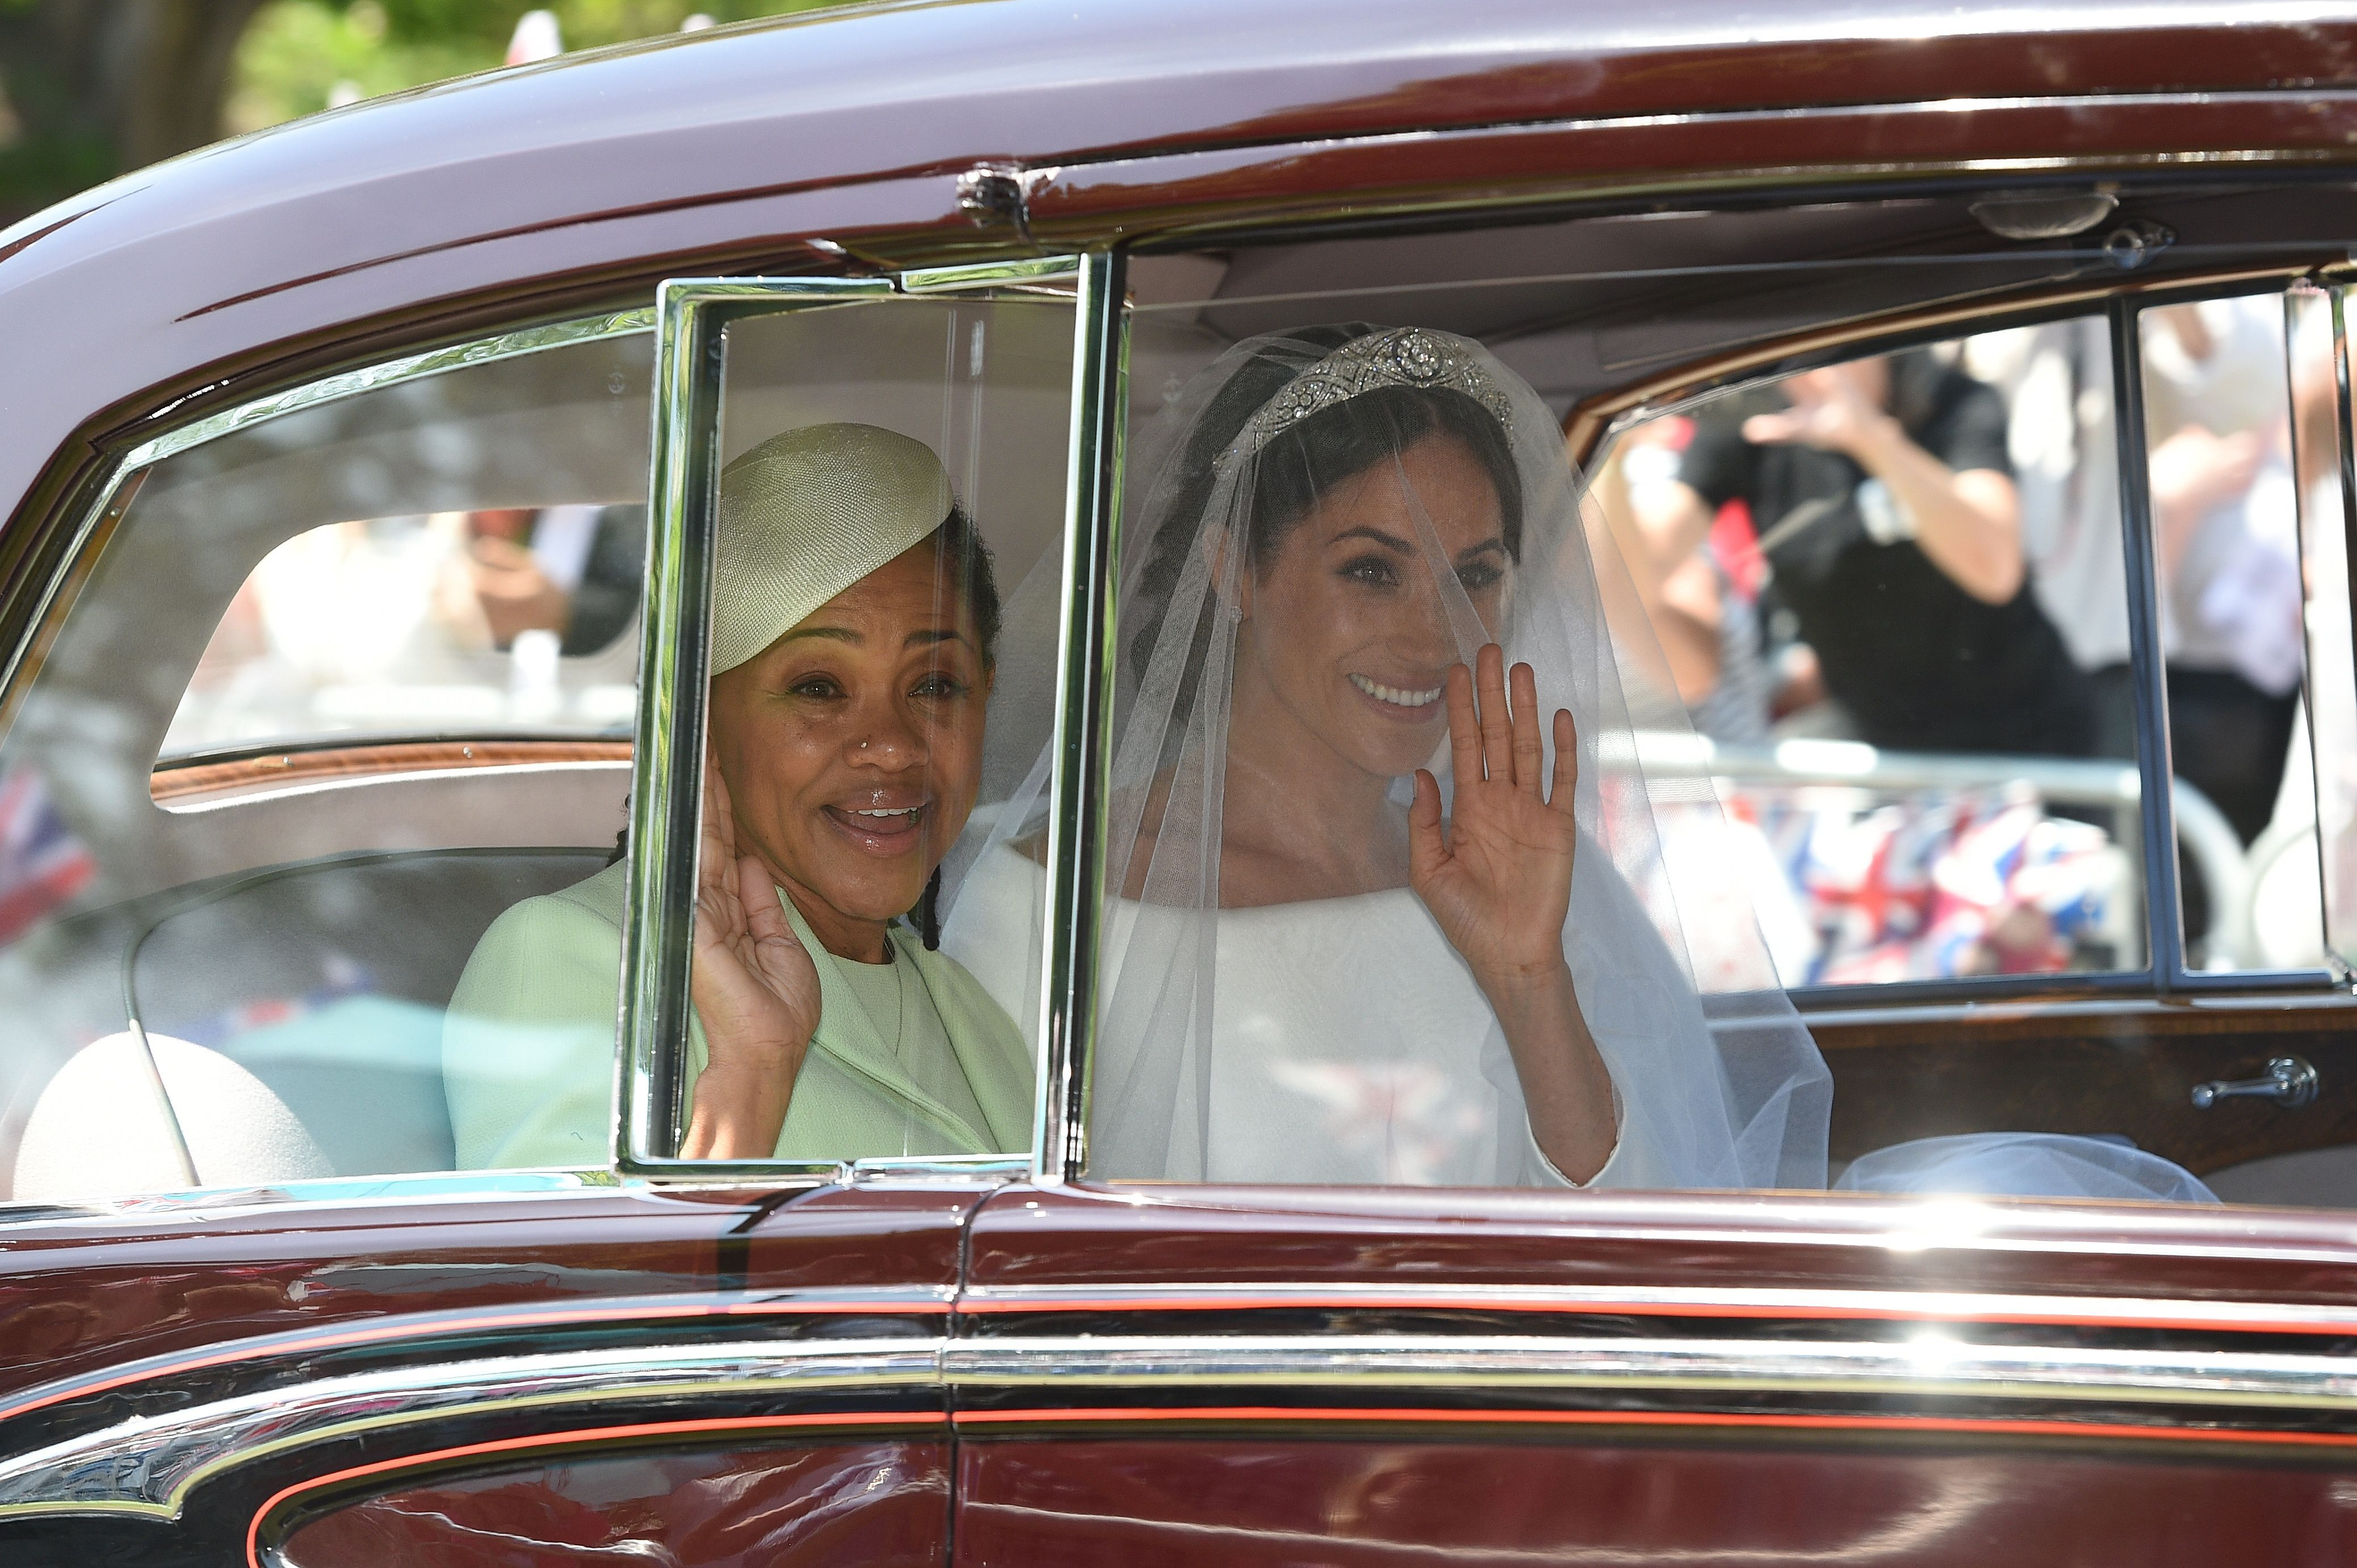 Meghan Markle And Her Mom Doria Ragland S Best Photos Together At The Royal Wedding